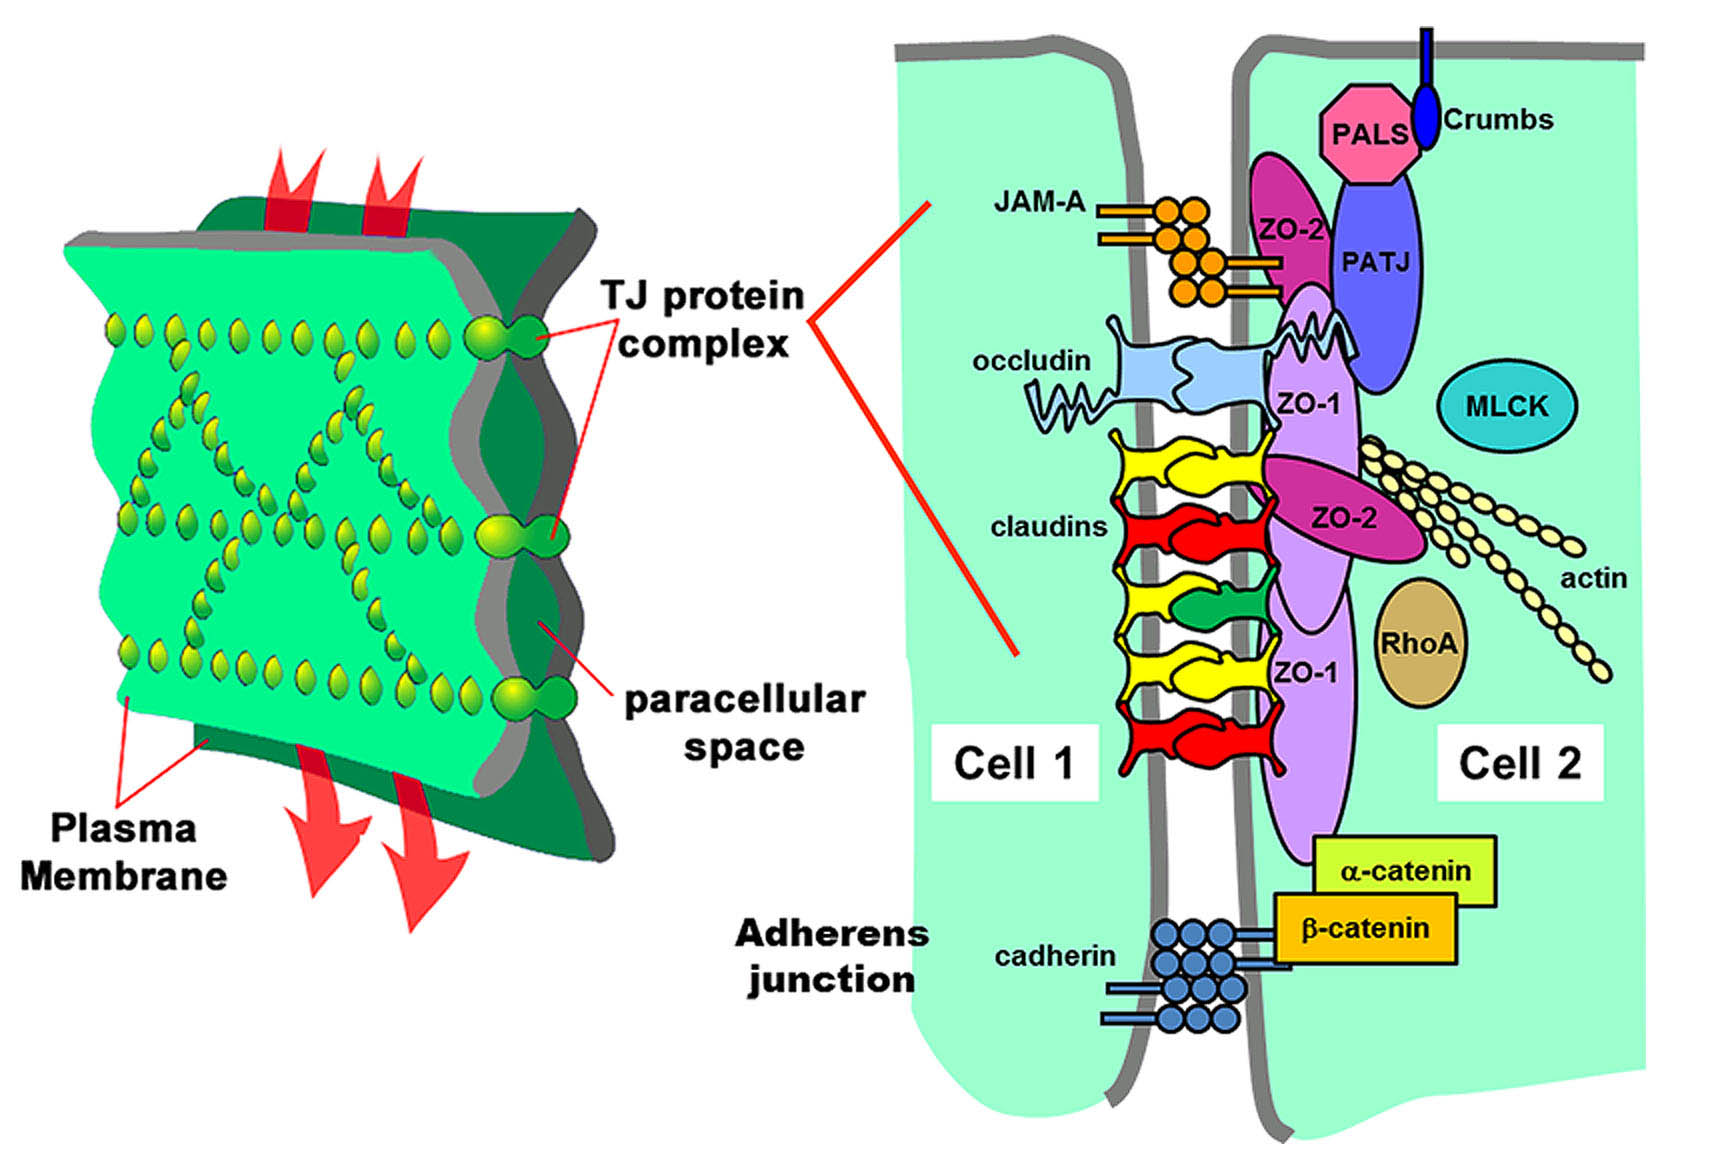 Junctions found at cell-cell contacts